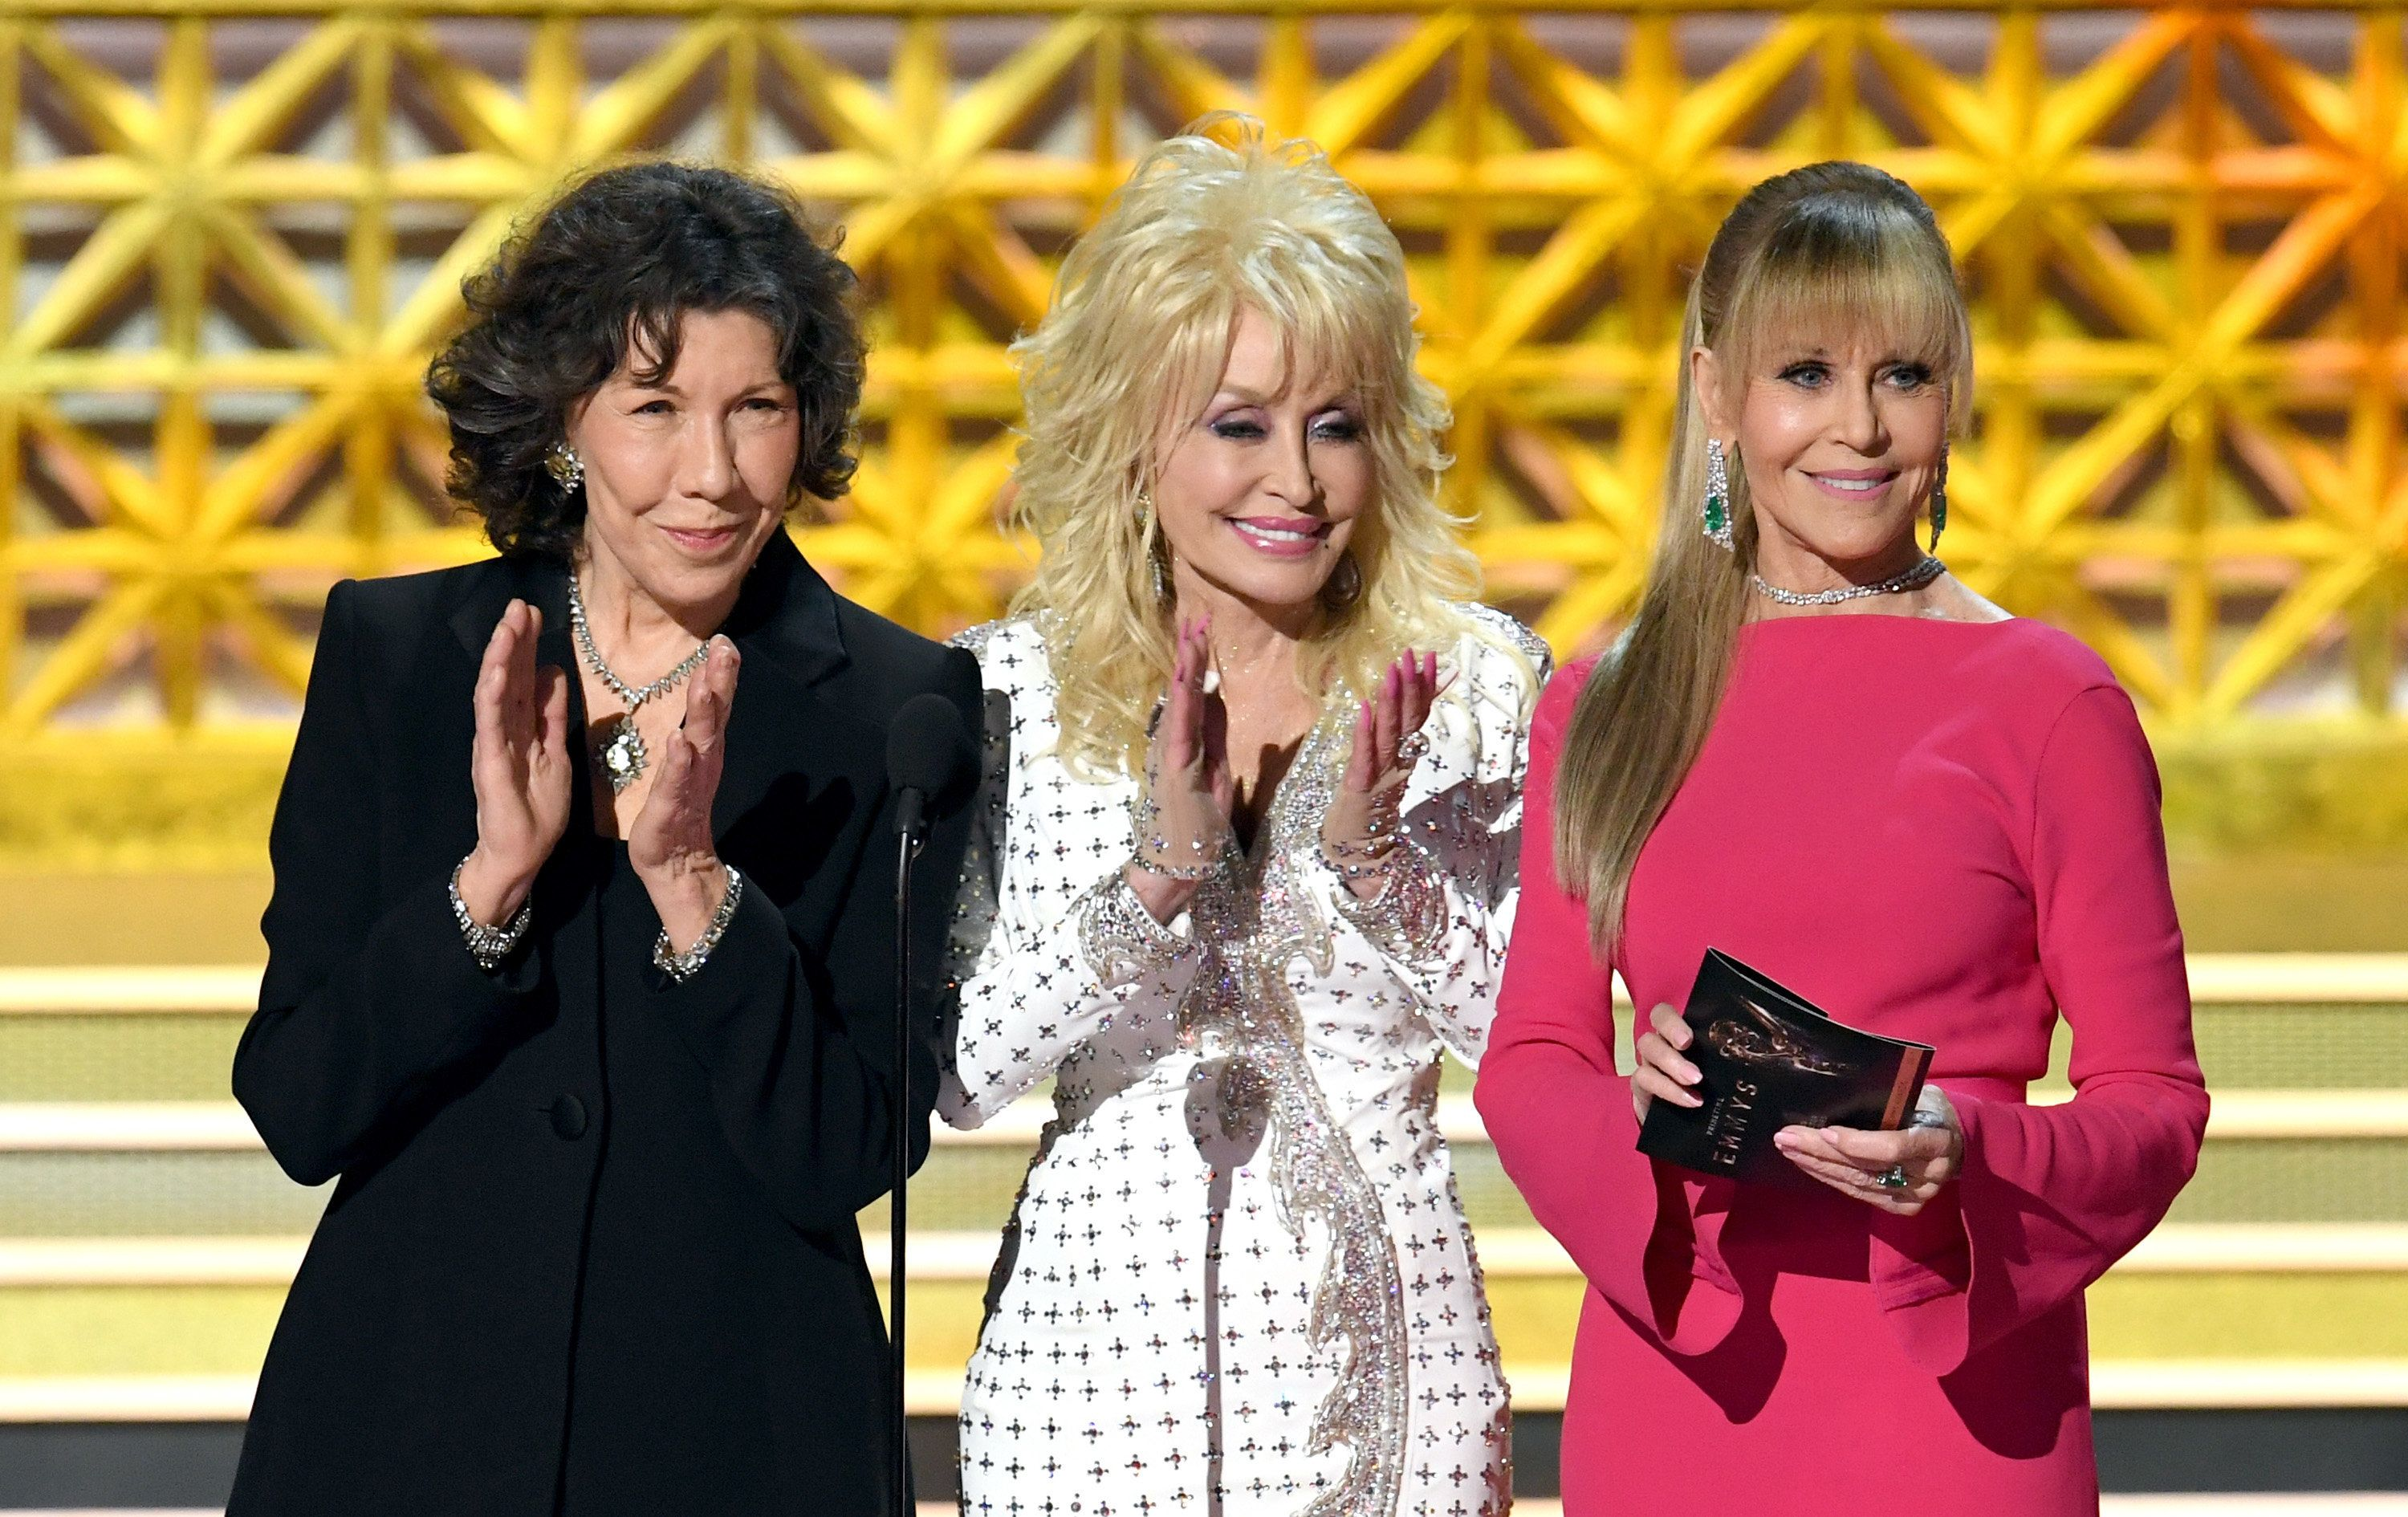 LOS ANGELES, CA - SEPTEMBER 17:  (L-R) Actors Lily Tomlin, Dolly Parton and Jane Fonda speak onstage during the 69th Annual Primetime Emmy Awards at Microsoft Theater on September 17, 2017 in Los Angeles, California.  (Photo by Kevin Winter/Getty Images)